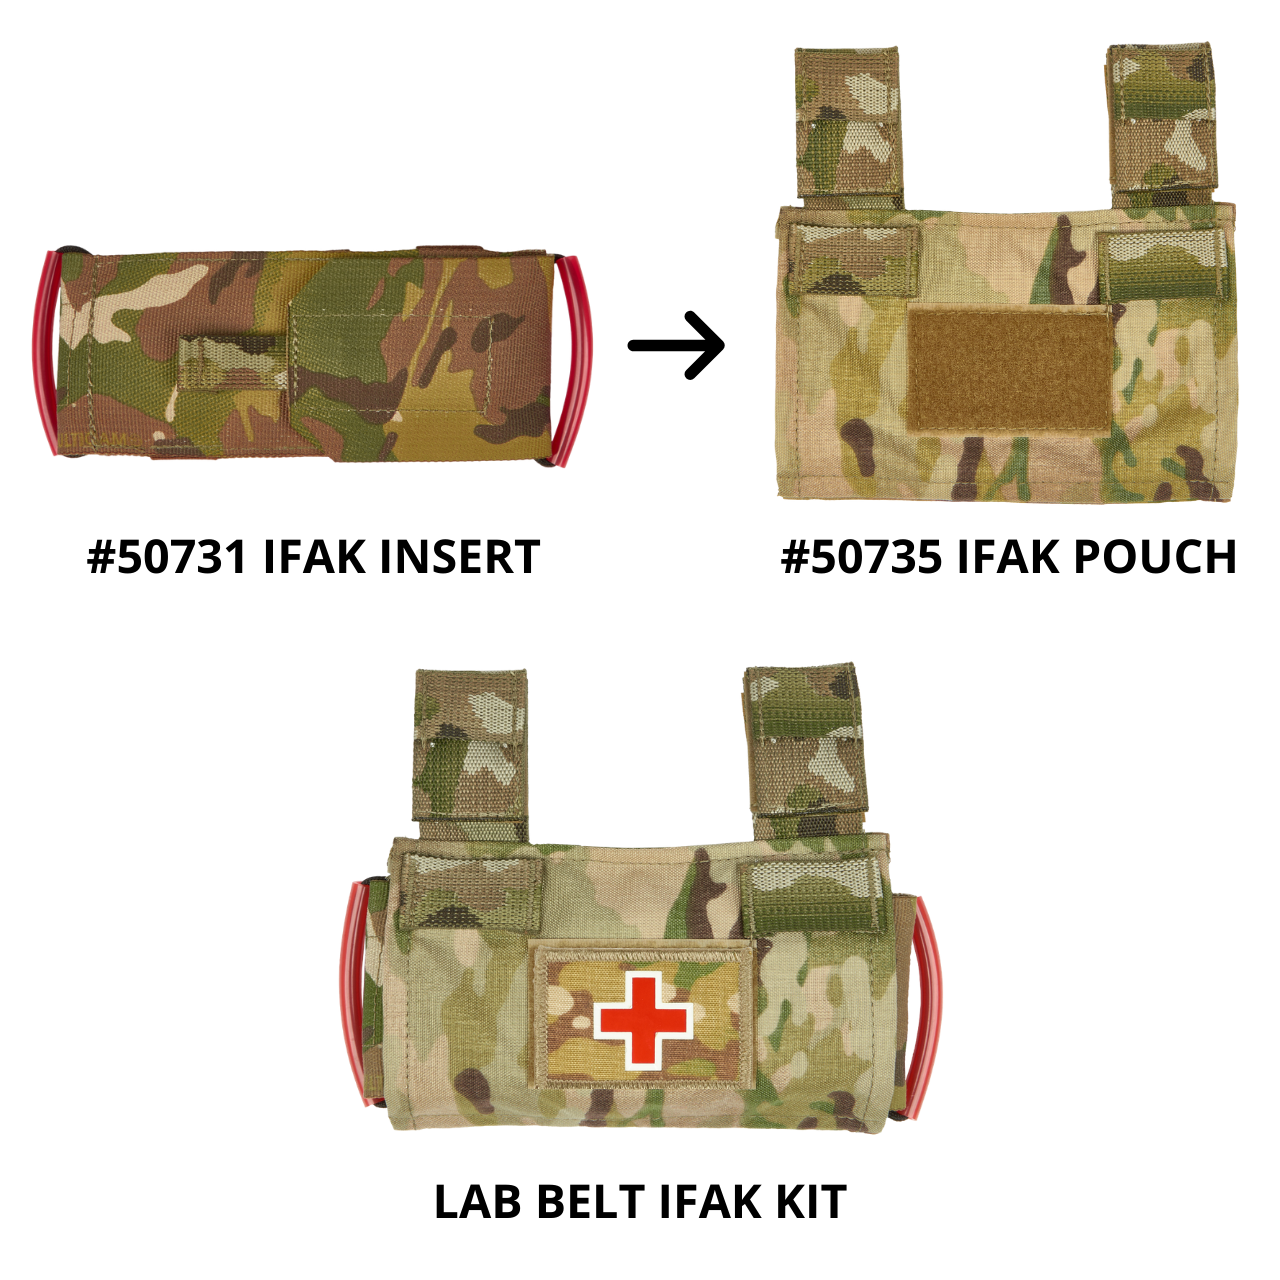 50731 ifak insert with 50735 ifak pouch